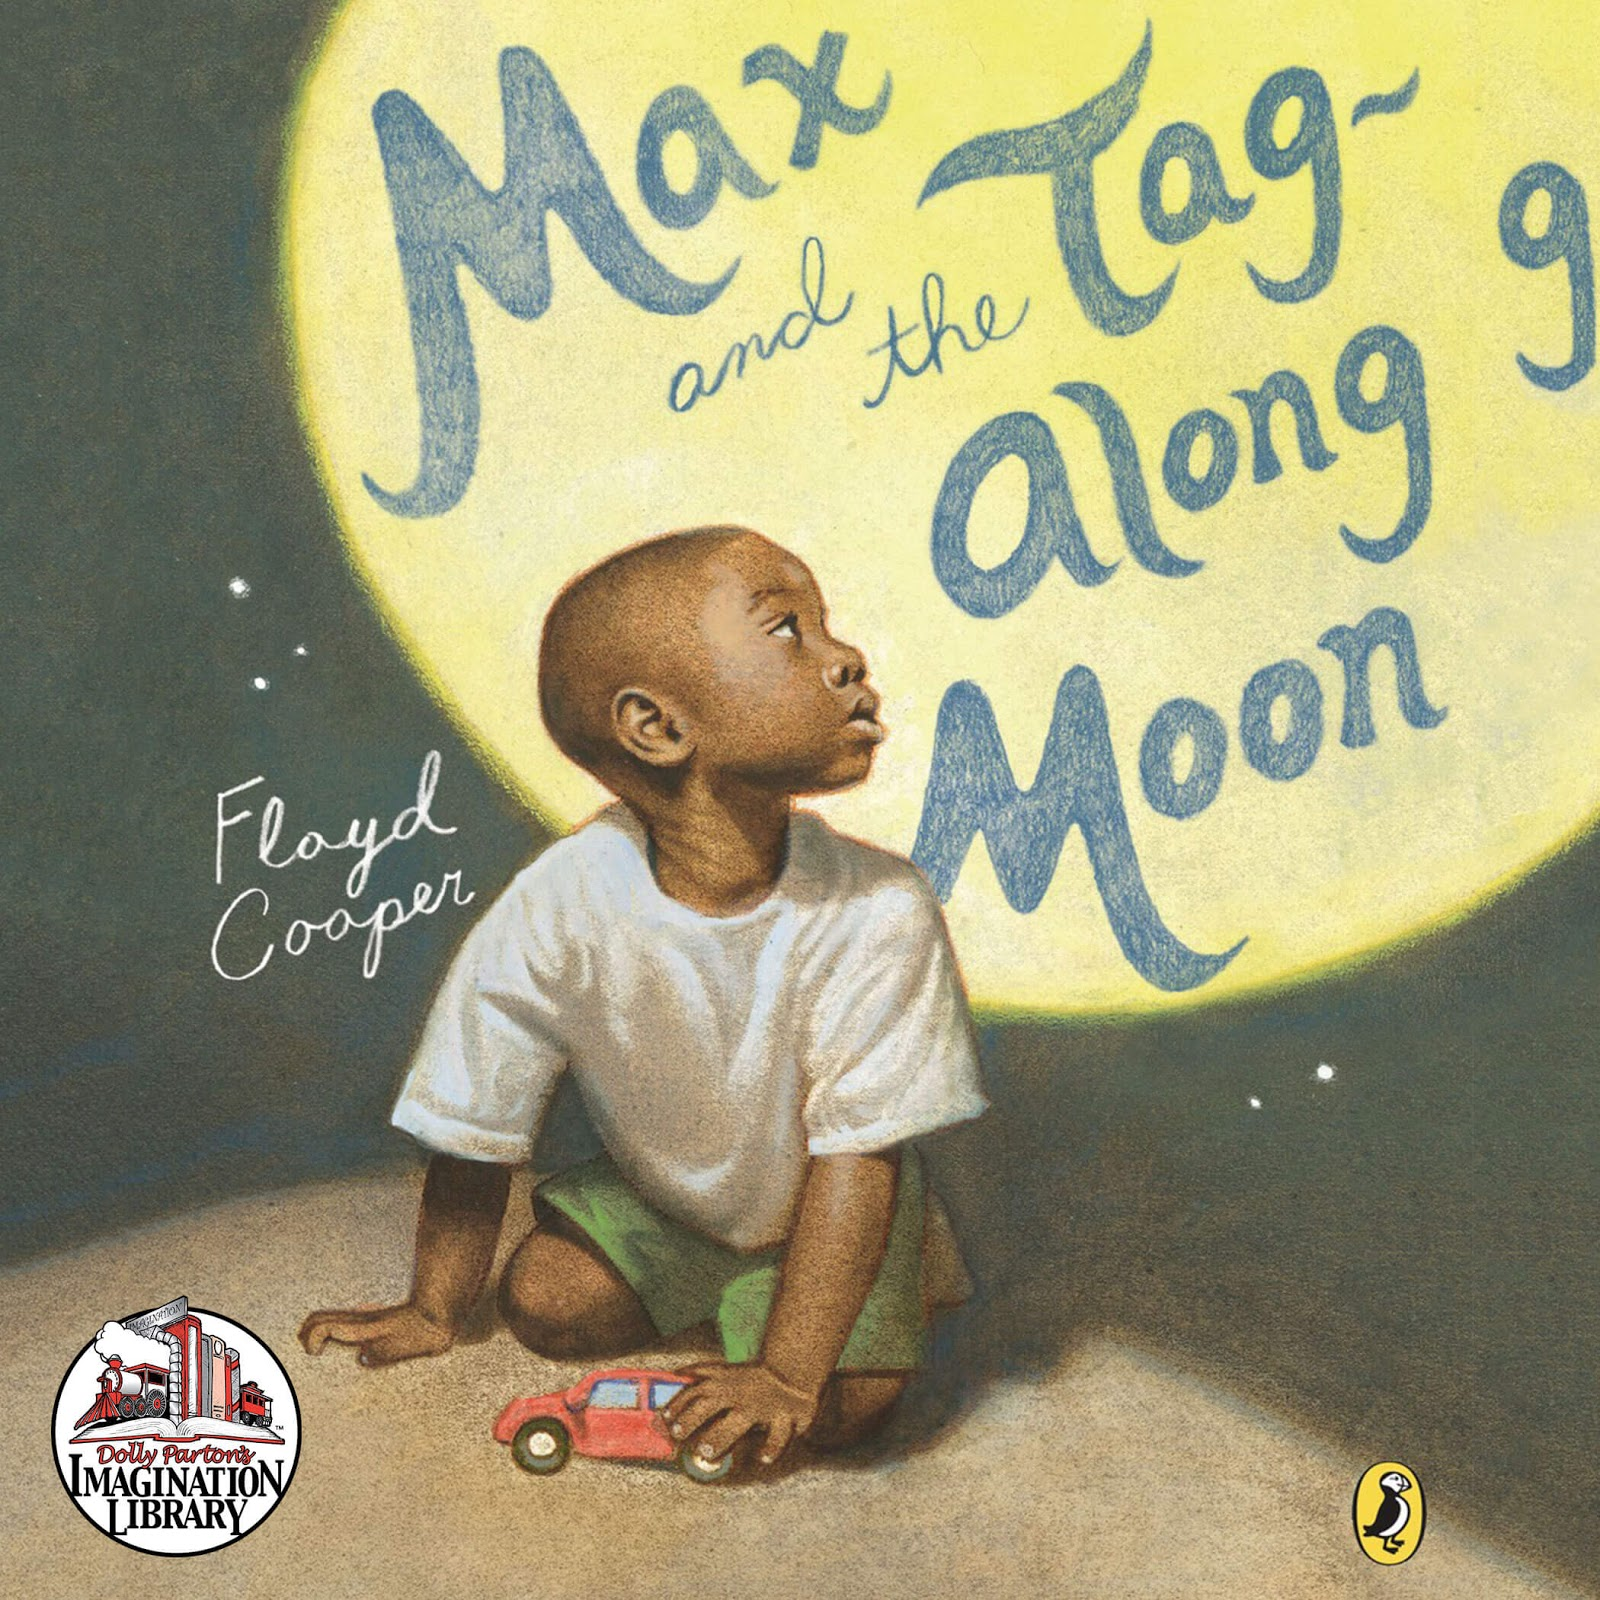 Max and the Tag Along Moon